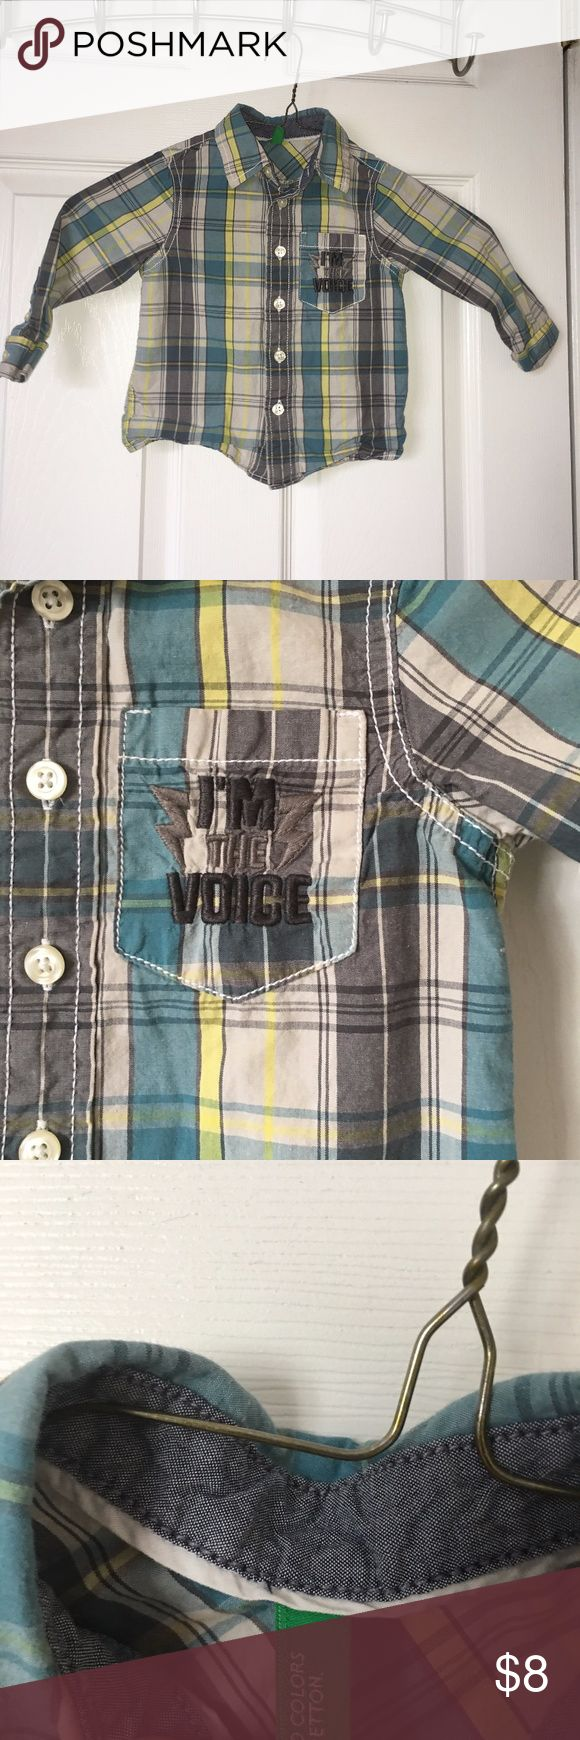 Boys Baby Plaid Button Down Shirt Lot of 2 Boys Baby Plaid Button Down Shirt Lot of 2 Inc. United Colors of Benneton Sz 1y. Excellent condition, no rips, no tears, no stains.#unitedcolorsofbenetton #boysunitedcolorsofbenetton #boystoddlerlongsleeveshirt #toddlerlongsleevebuttondownshirt #toddlerunitedcolorsofbennetonplaidshirt United Colors Of Benetton Shirts & Tops Button Down Shirts